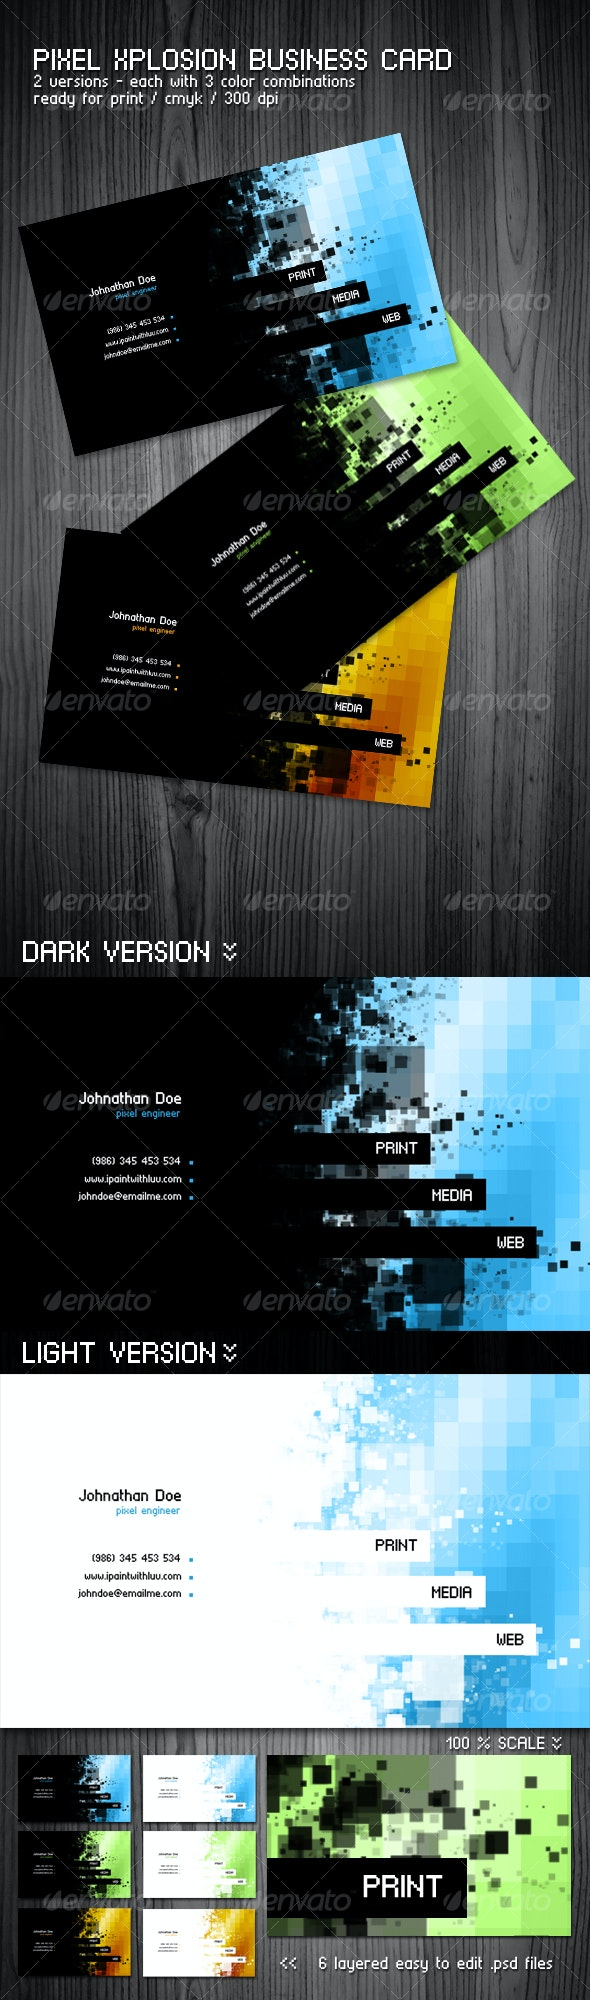 Pixel Xplosion Modern Business Card - Creative Business Cards